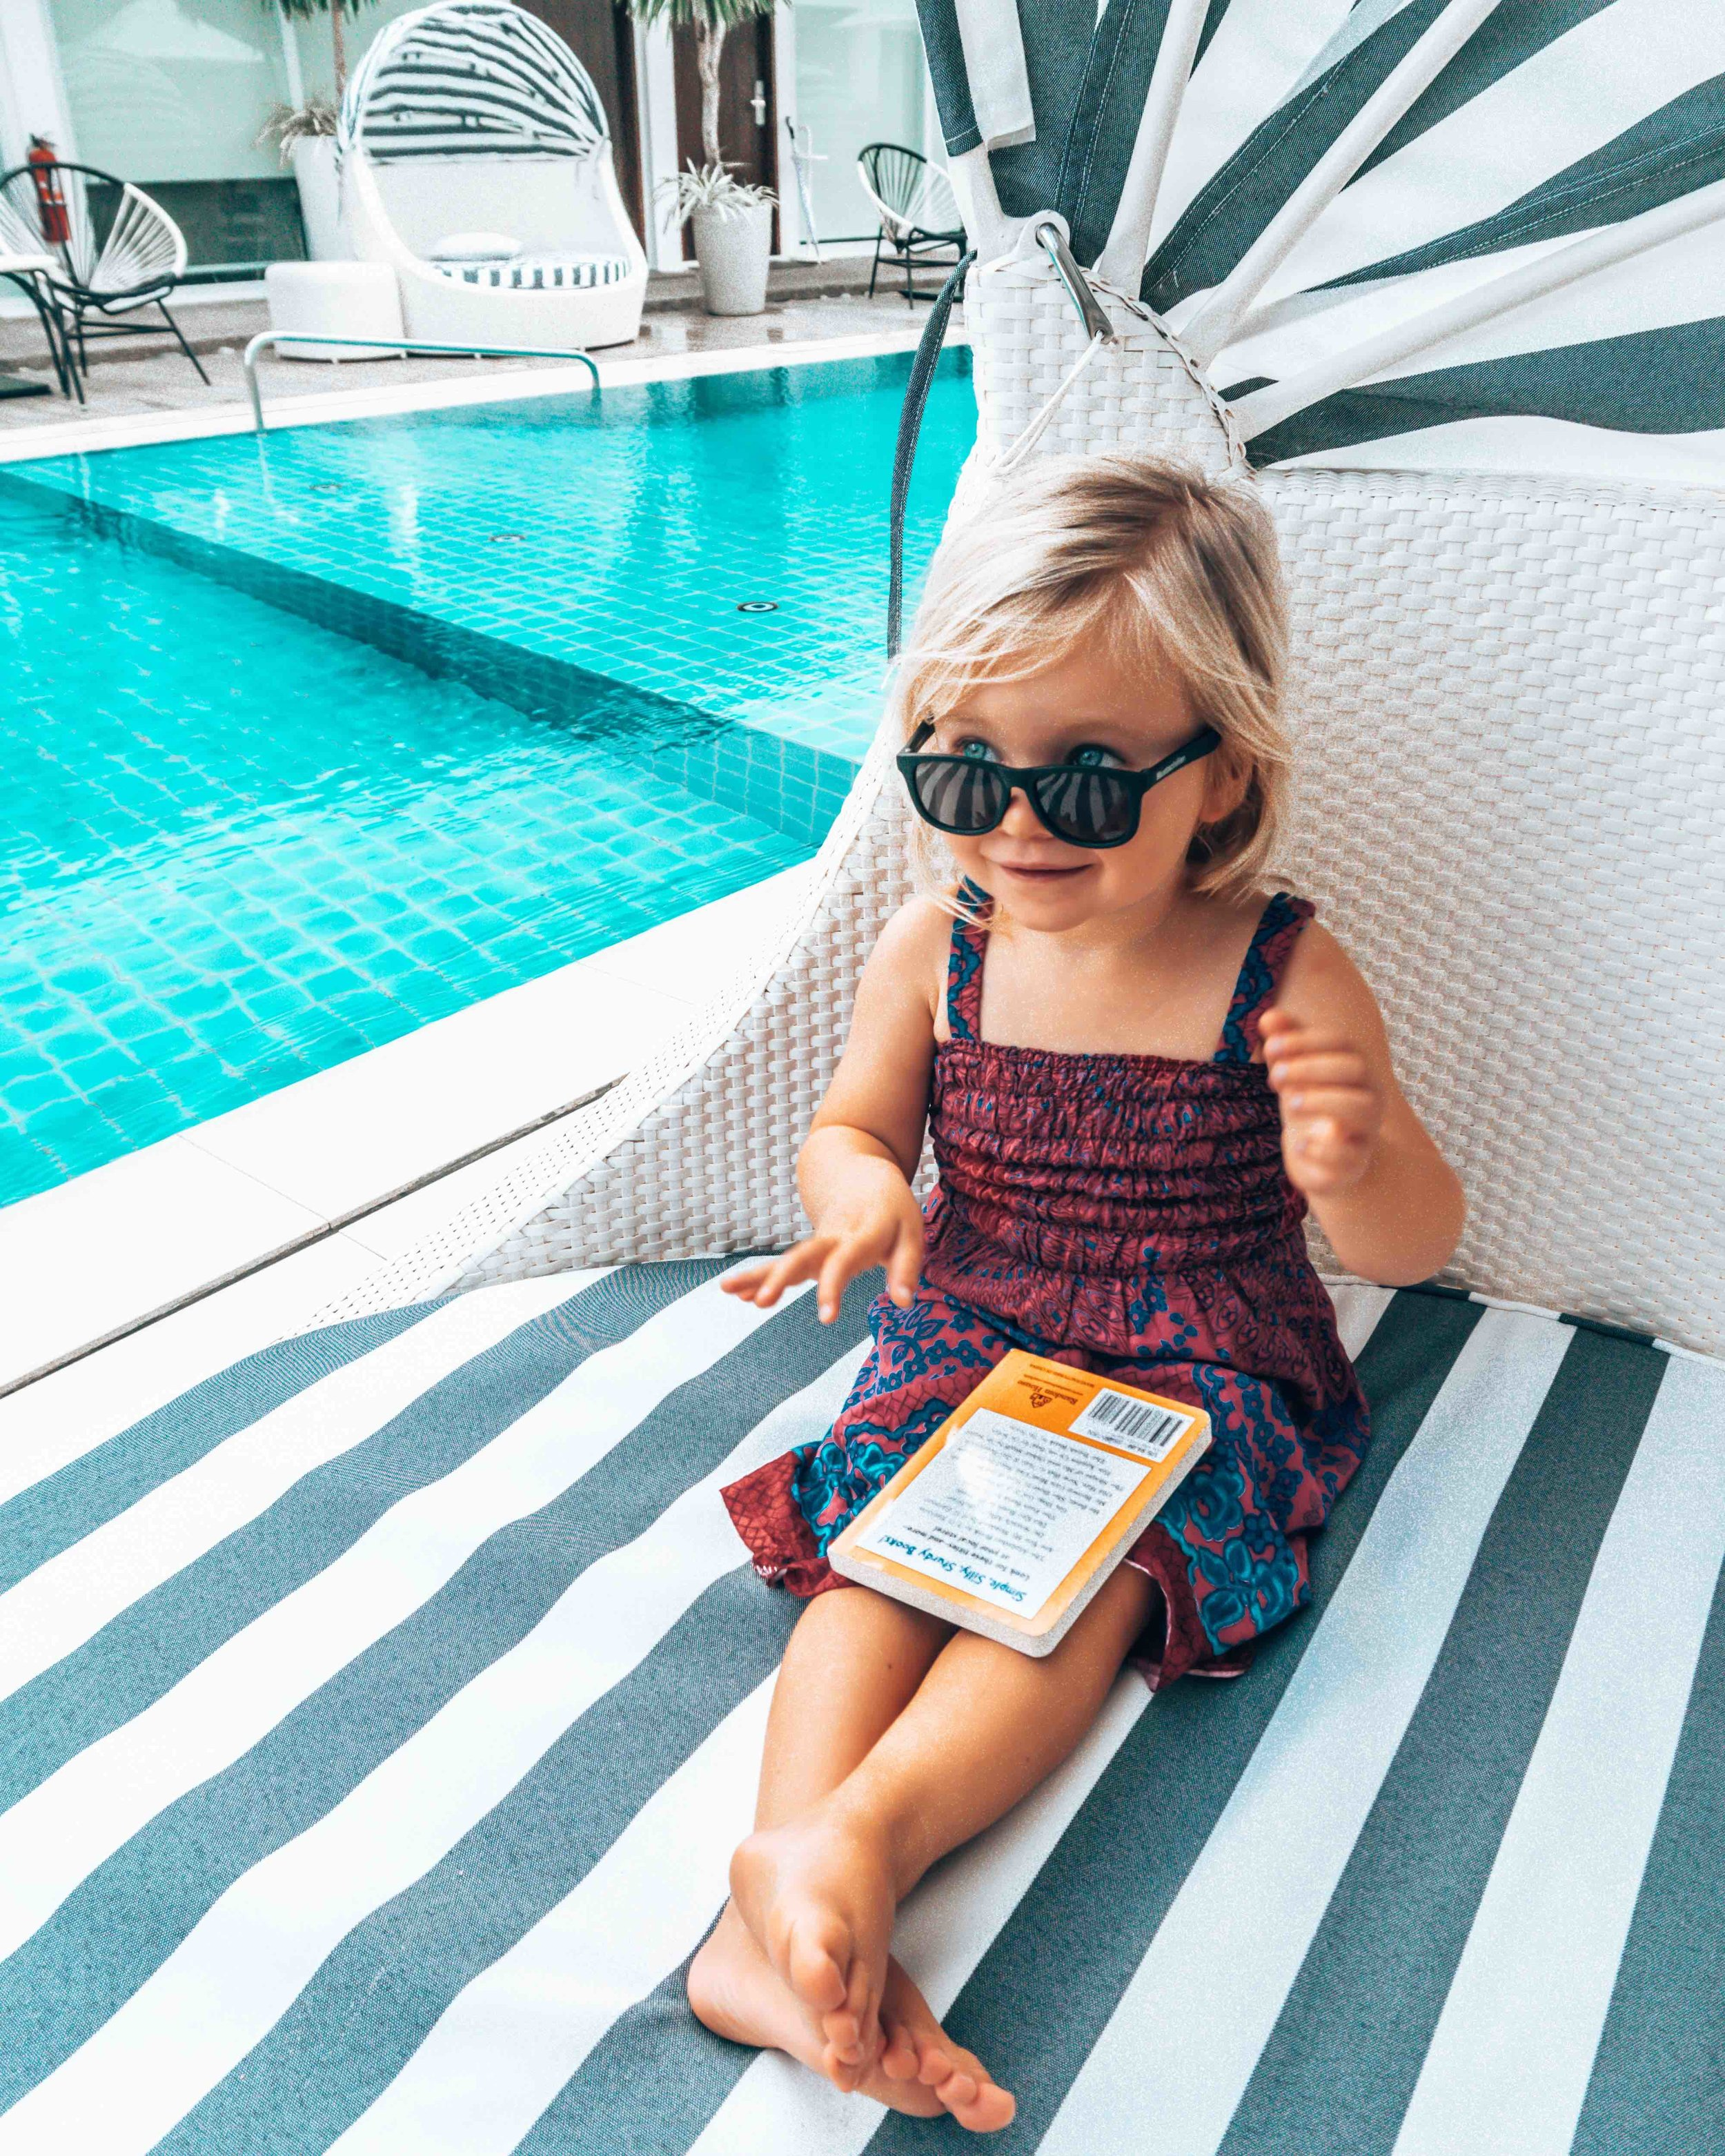 lifestyle_pool_hotel_coast_boracay_philippines_sunglasses_daybed_relaxing_book.jpg